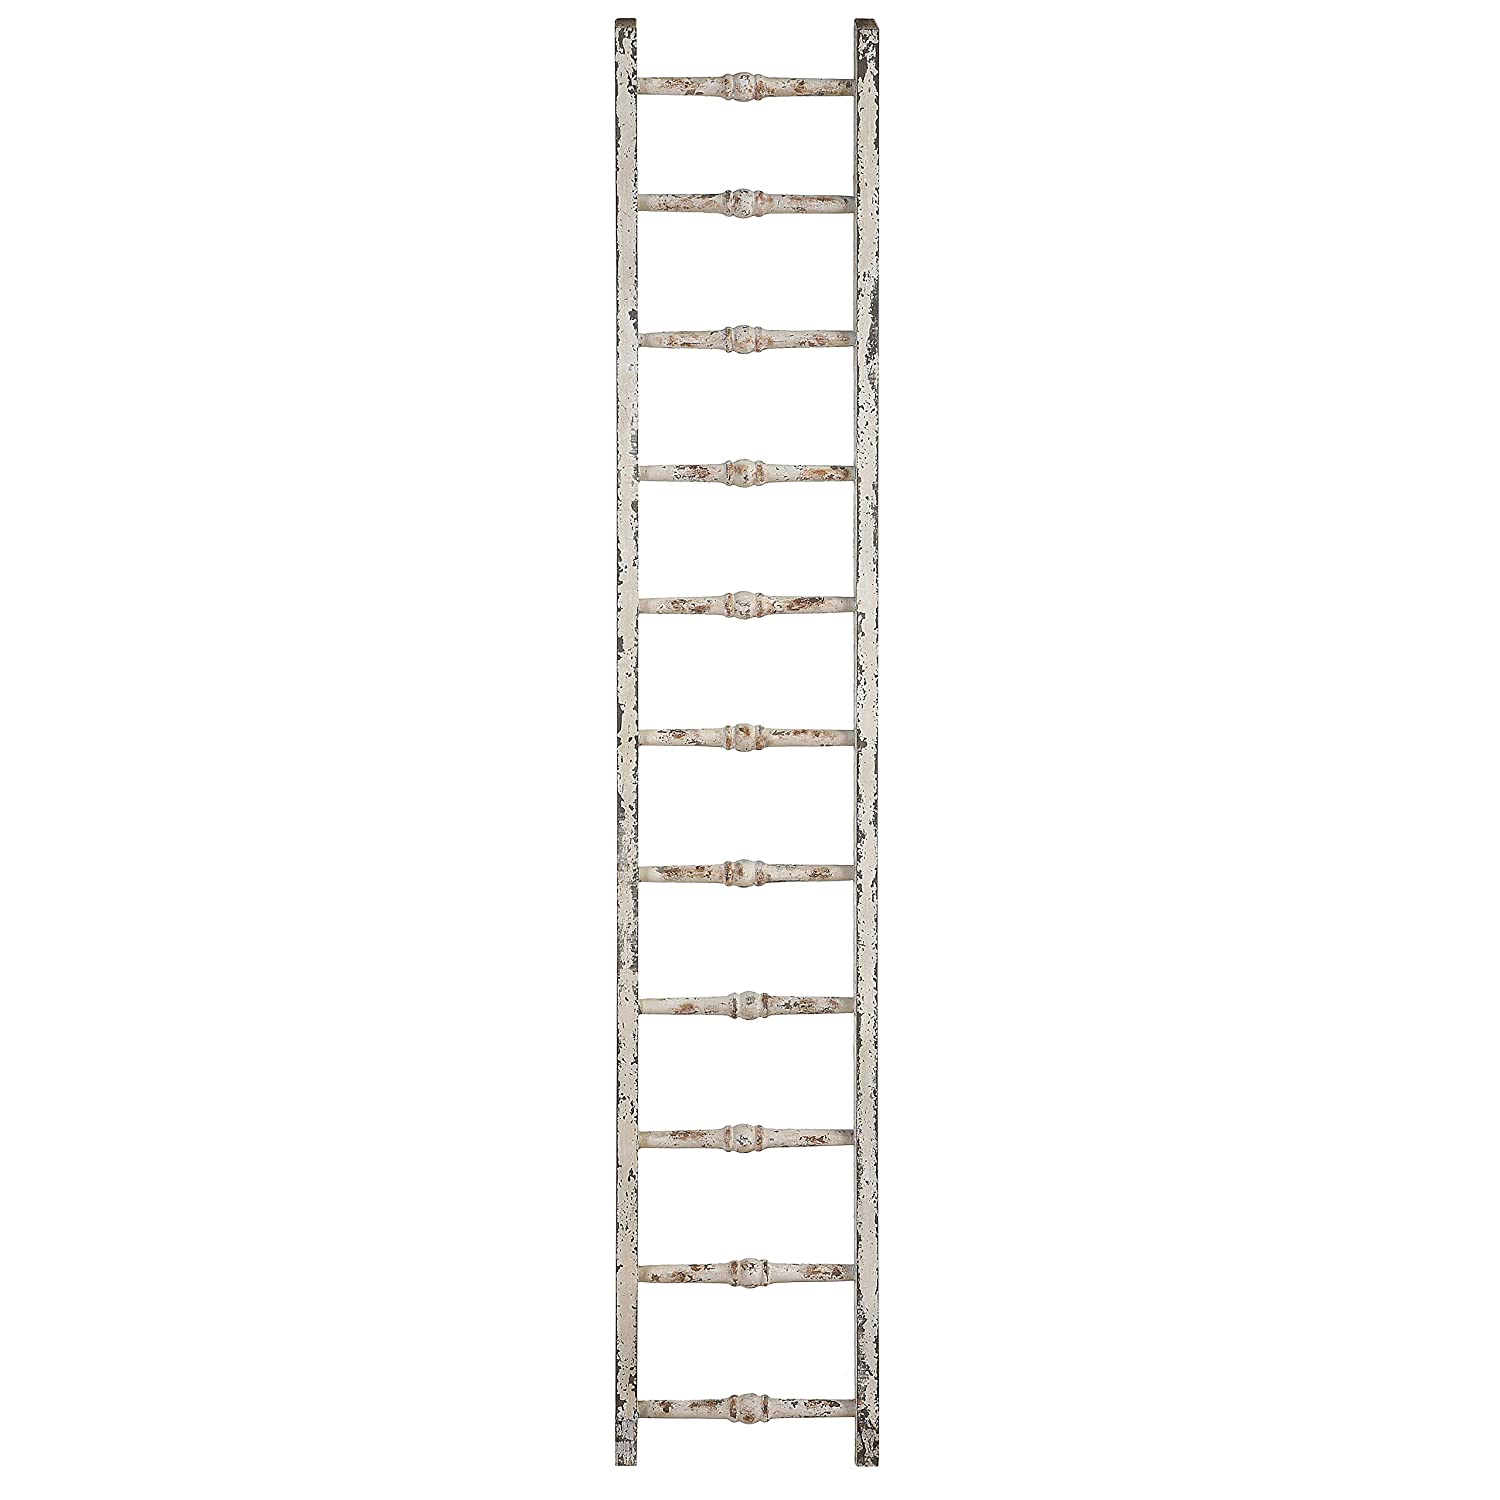 Distressed wood decorative ladder for French farmhouse decorated rooms.